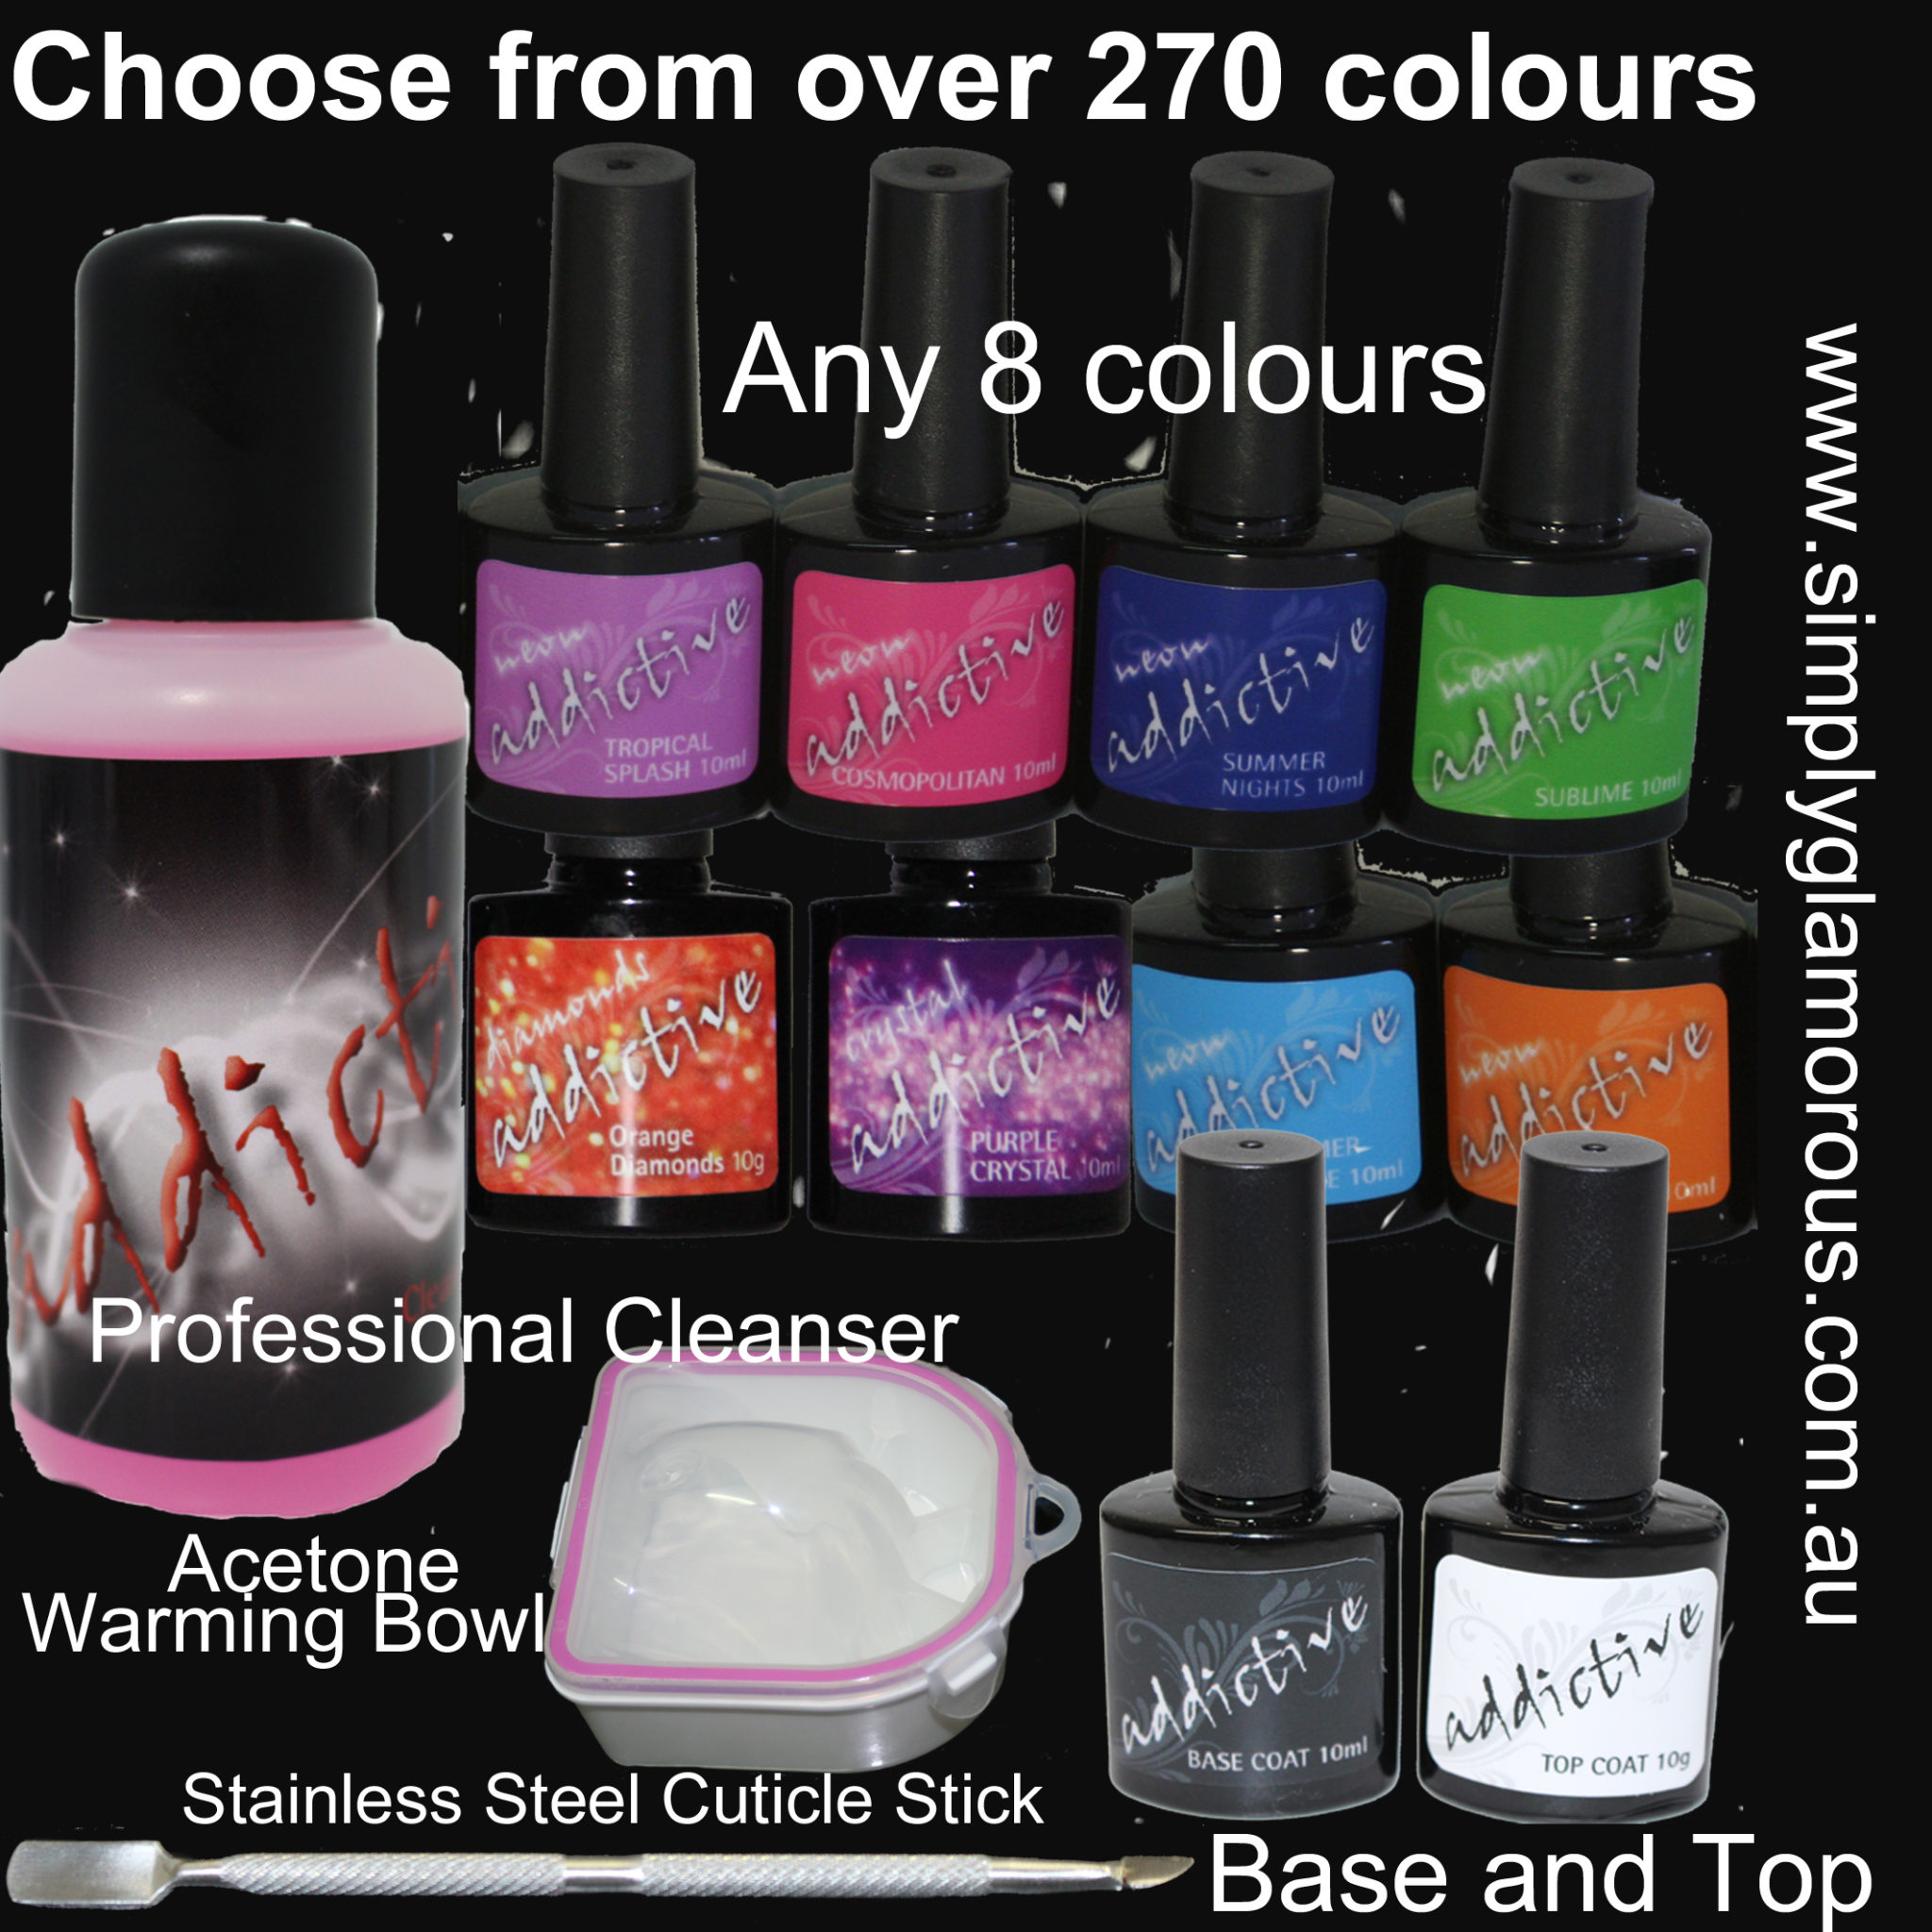 Uv Gel Nail Polish Starter Kit: 10 Bottle Addictive UV LED Gel Nail Polish Starter Kit